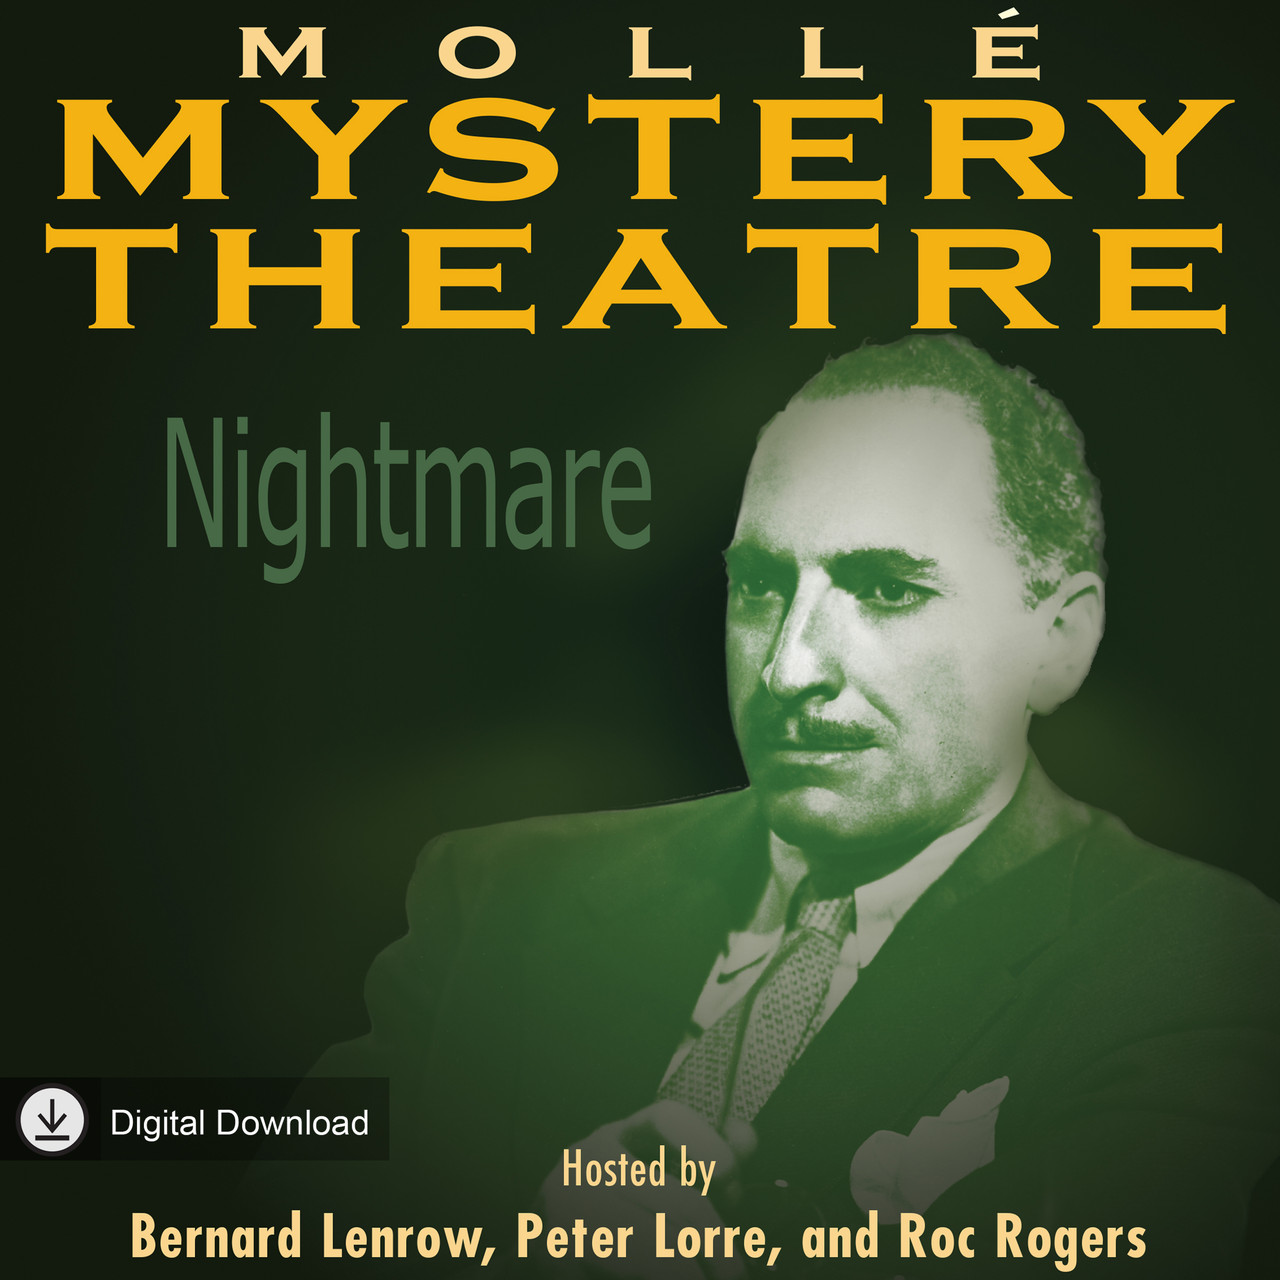 Molle Mystery Theatre: Nightmare (MP3 Download)